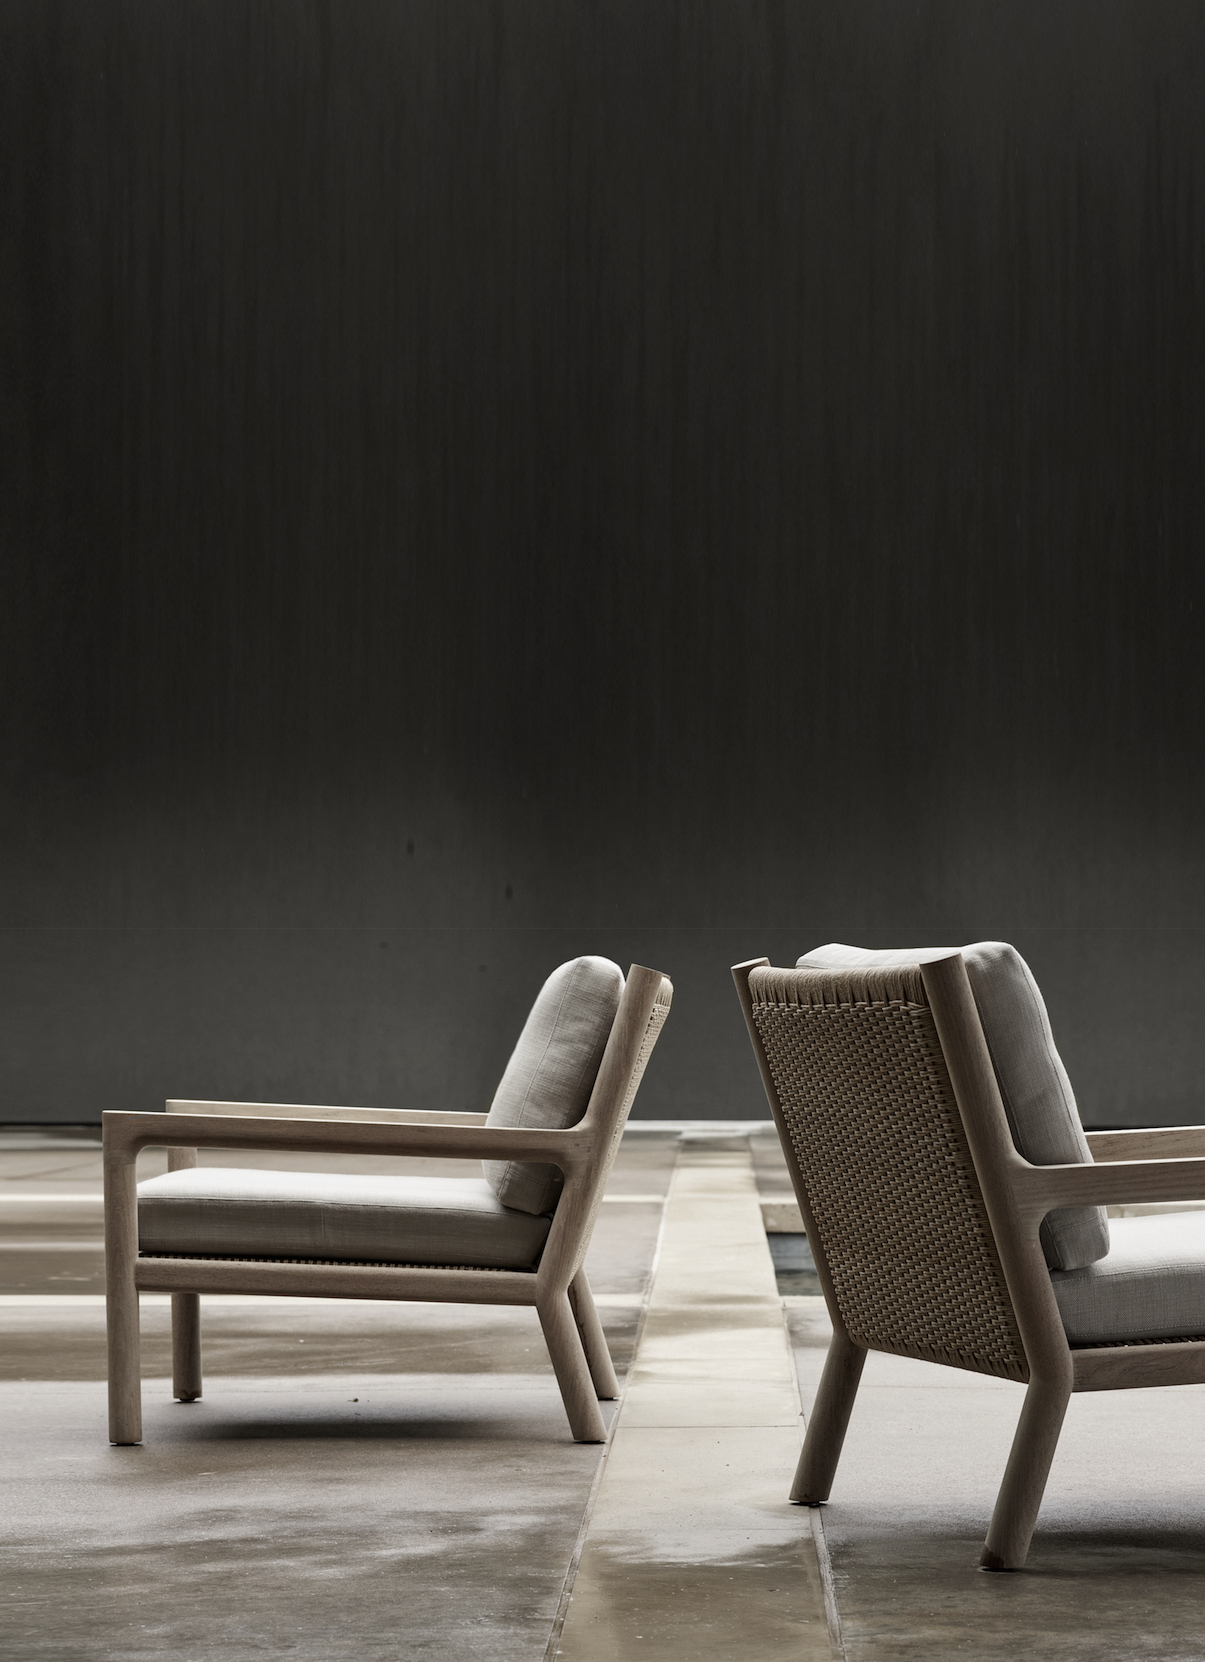 Franck Outdoor Furniture Collection, Vincent Van Duysen For Sutherland